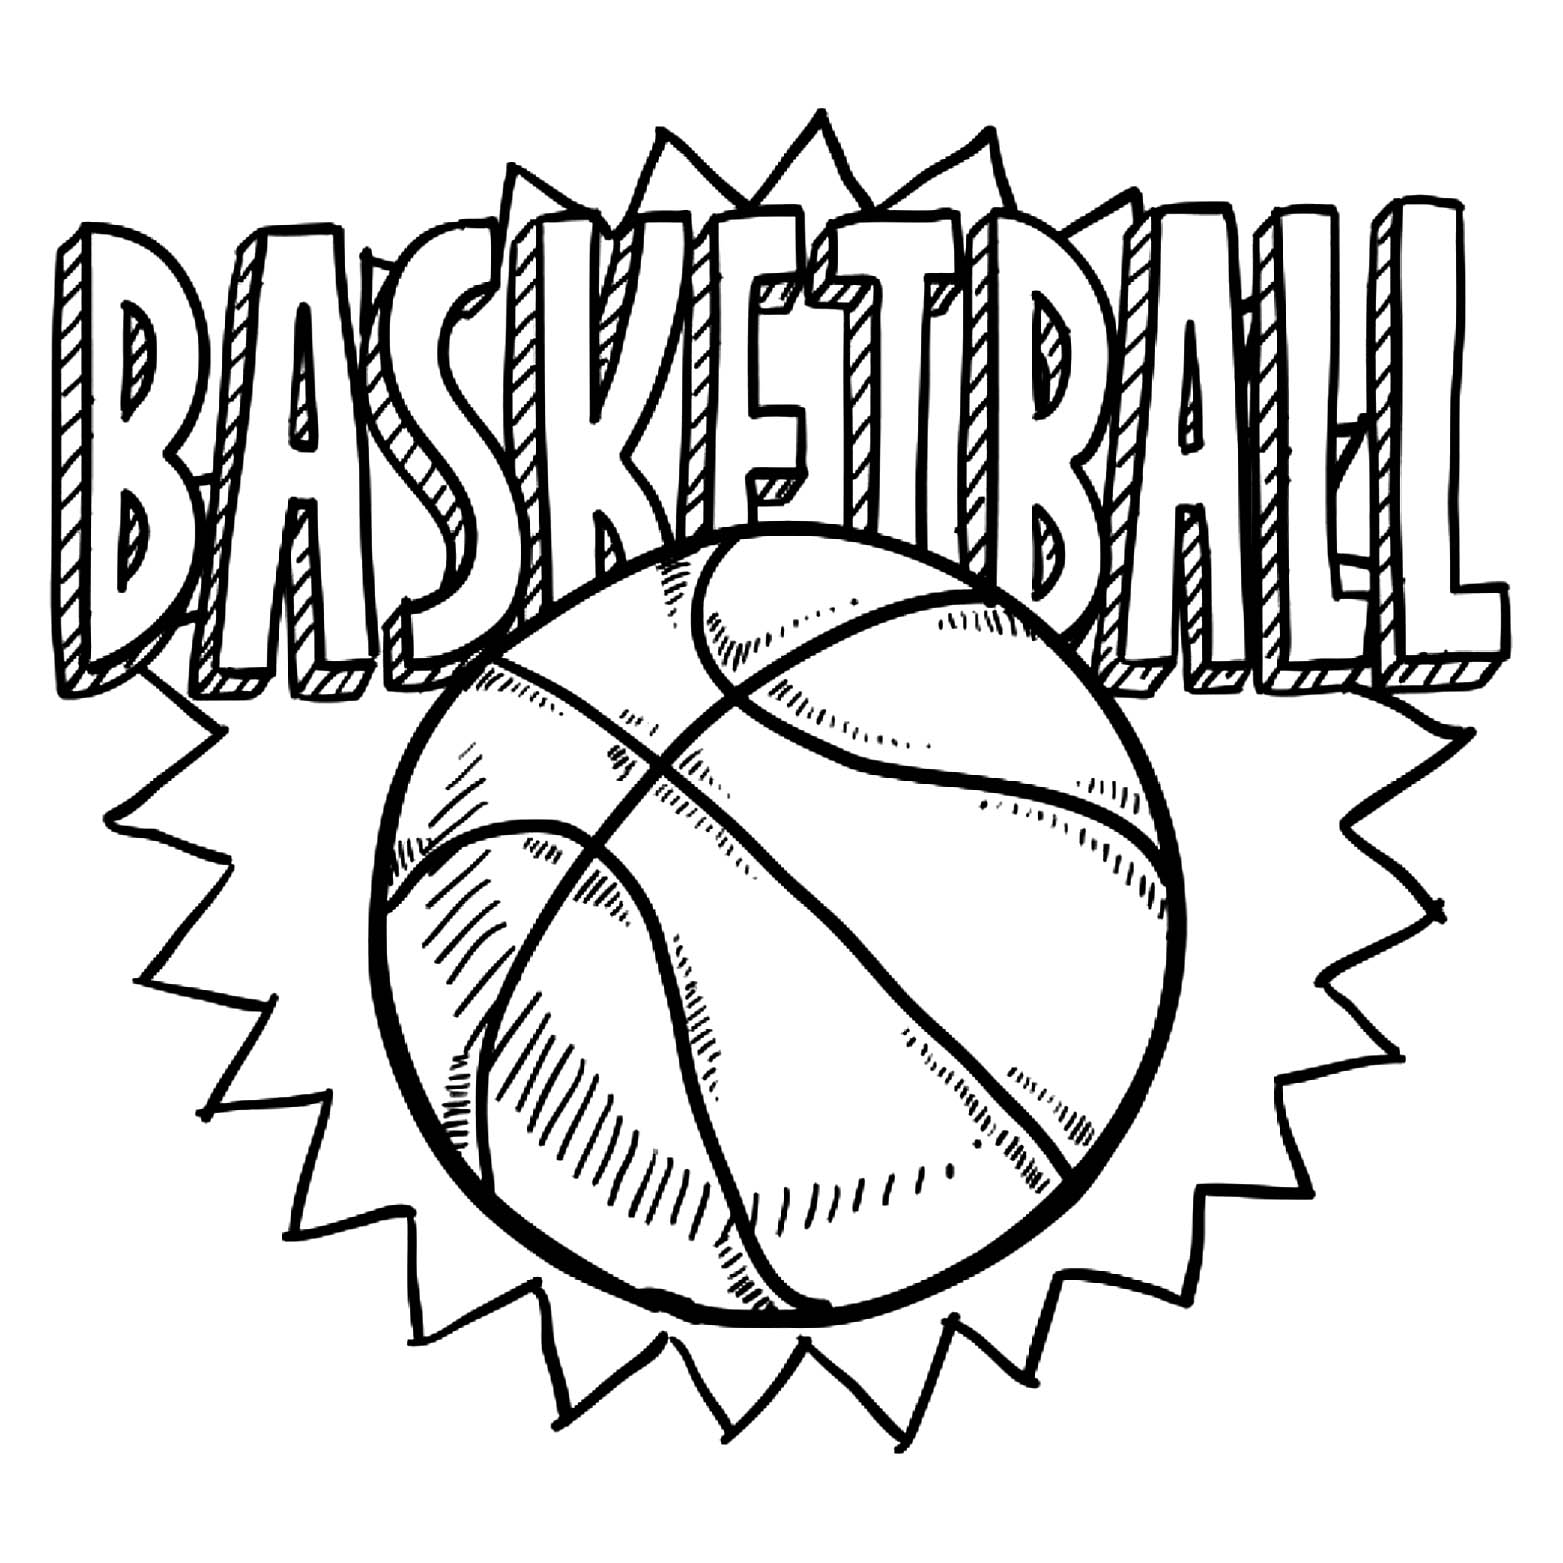 coloring pictures basketball basketball to download for free basketball kids coloring basketball coloring pictures